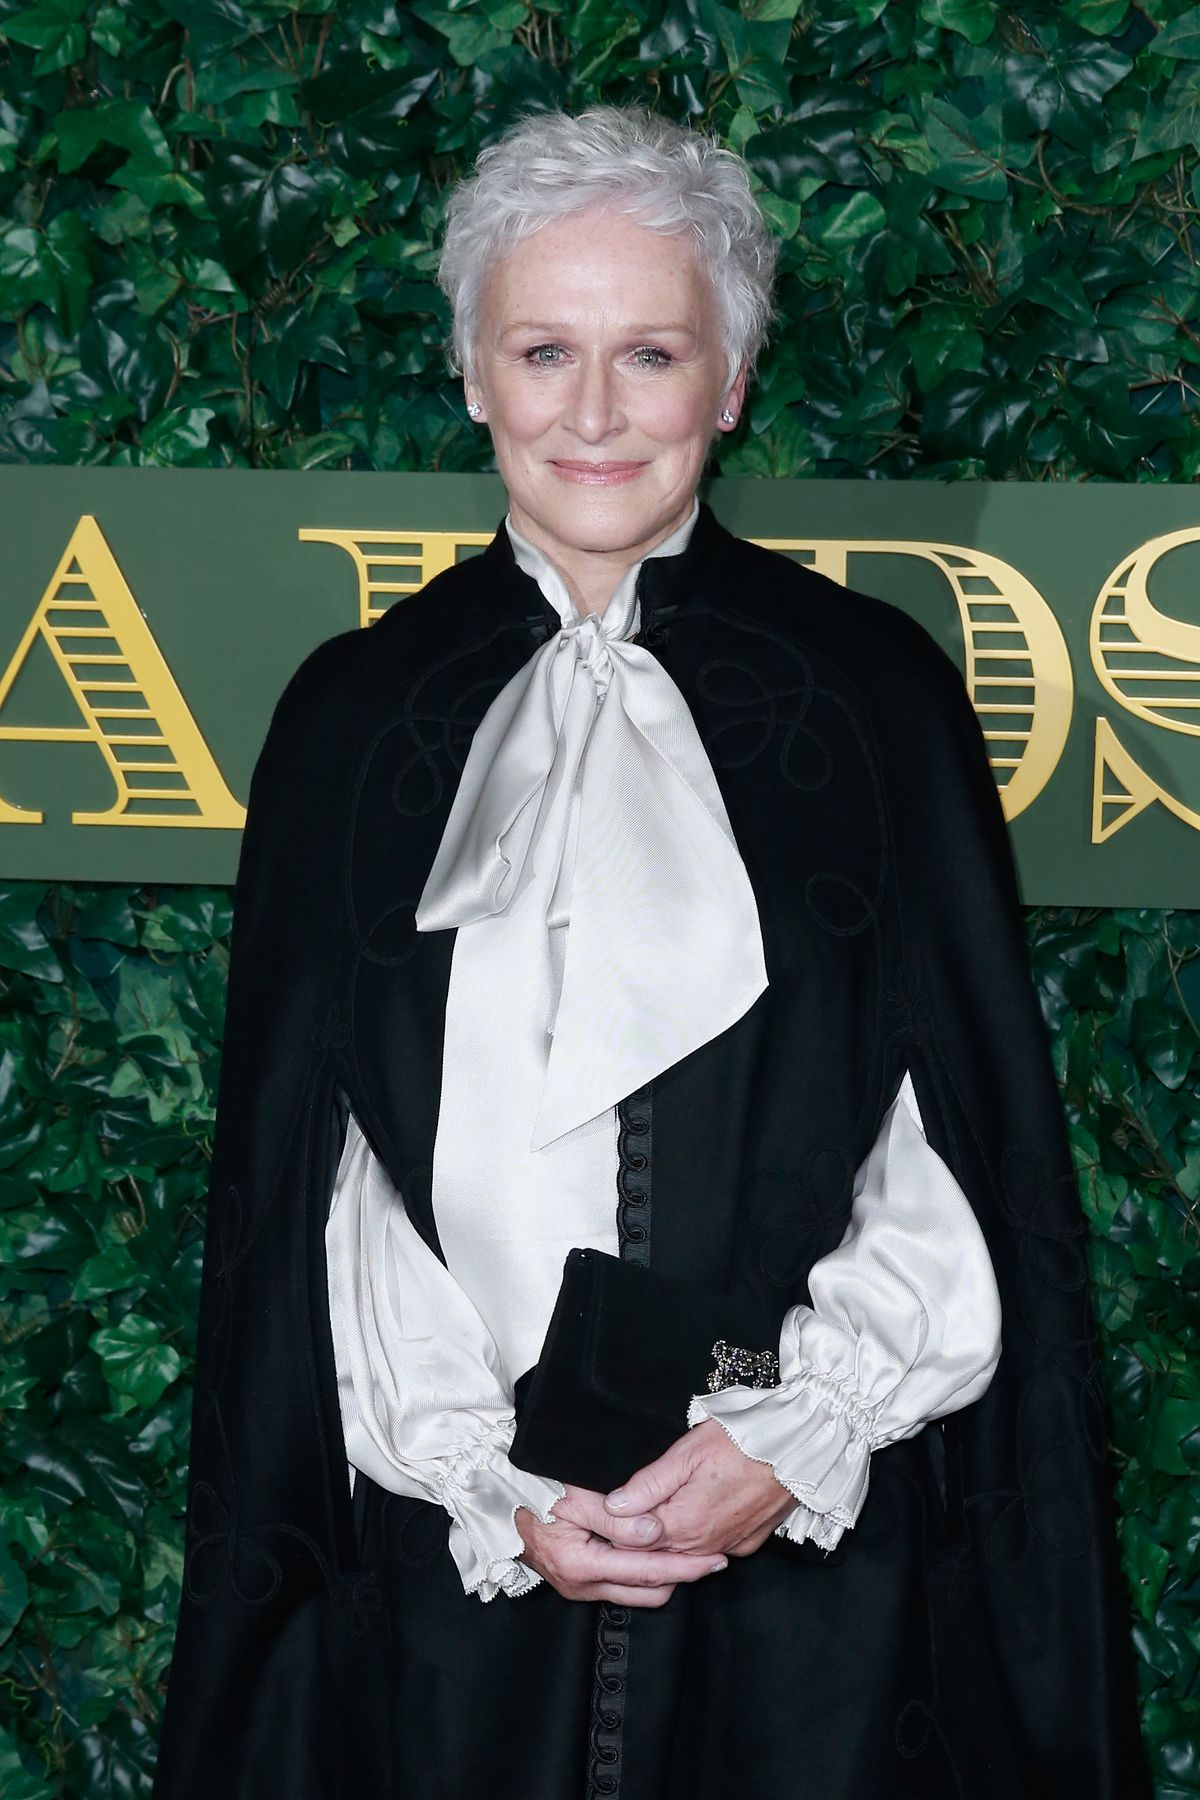 Glenn Close attends The London Evening Standard Theatre Awards at The Old Vic Theatre on November 13, 2016 in London, England. (Photo by John Phillips/Getty Images)